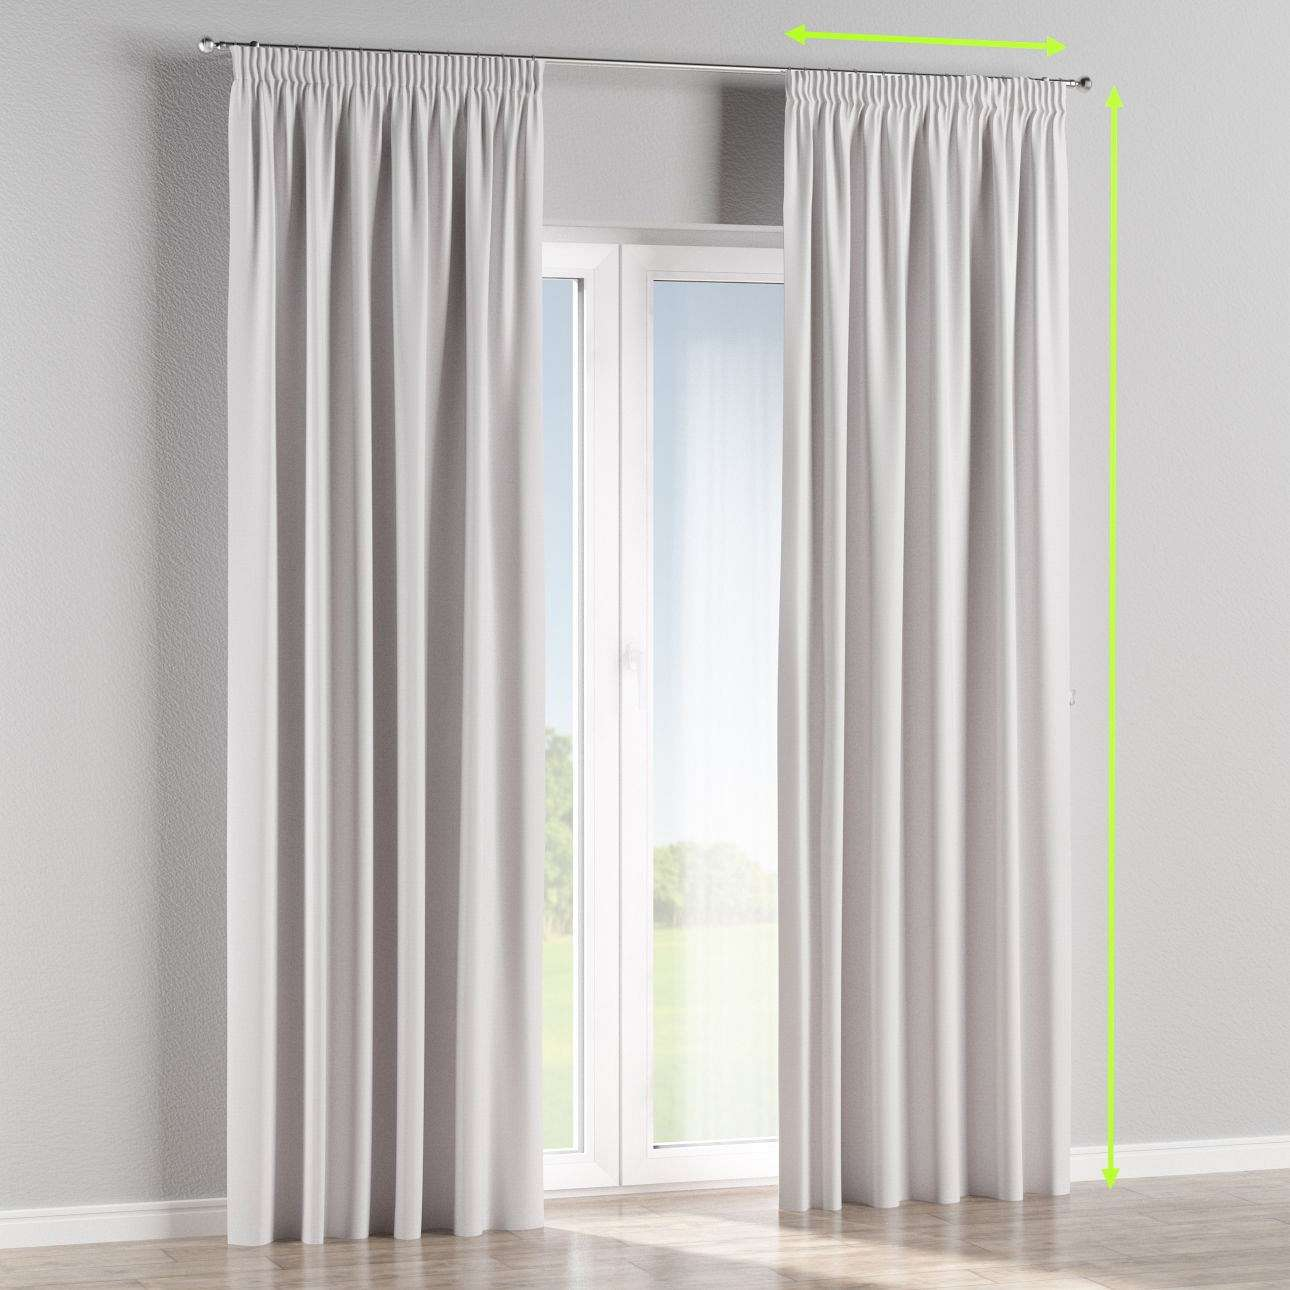 Pencil pleat curtain in collection Blackout, fabric: 269-65